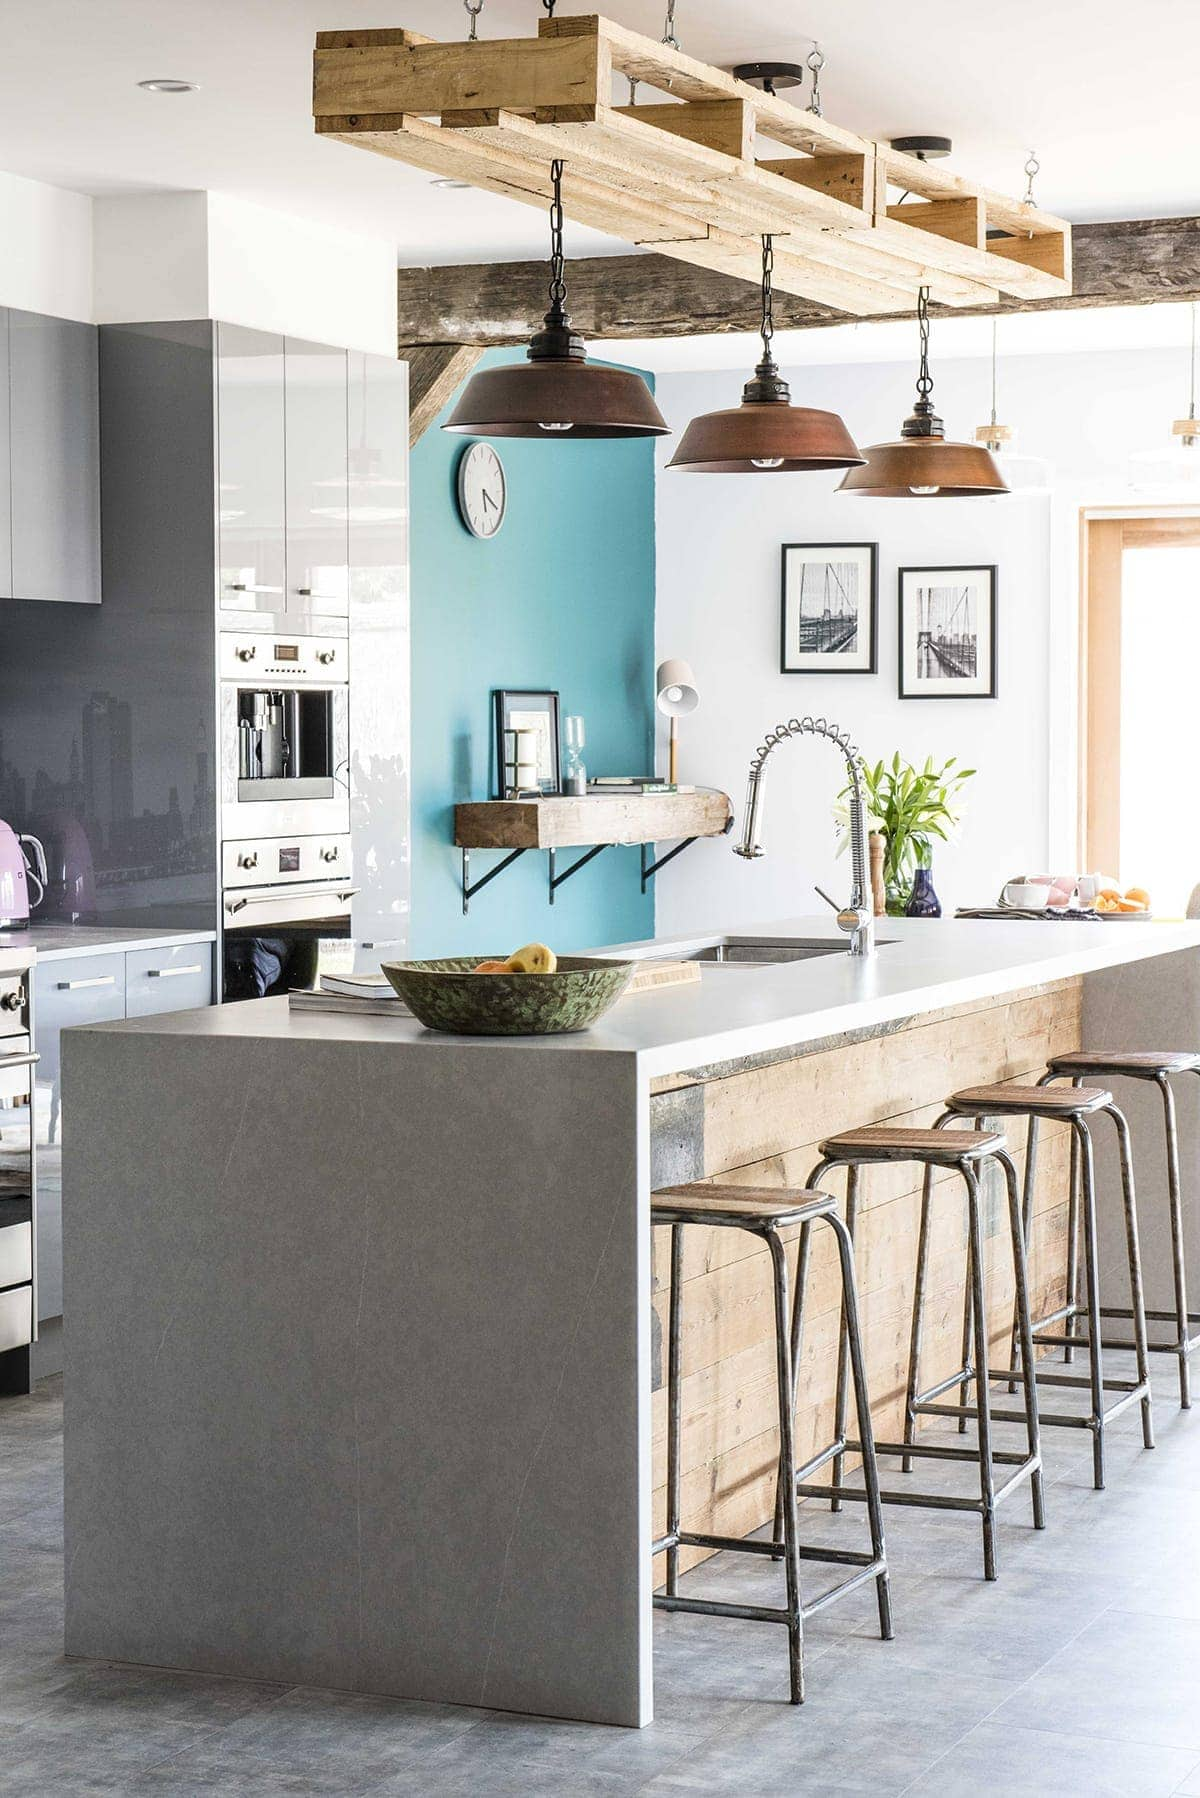 House Rules 2018 Jess and Jared kitchen with industrial bar stools